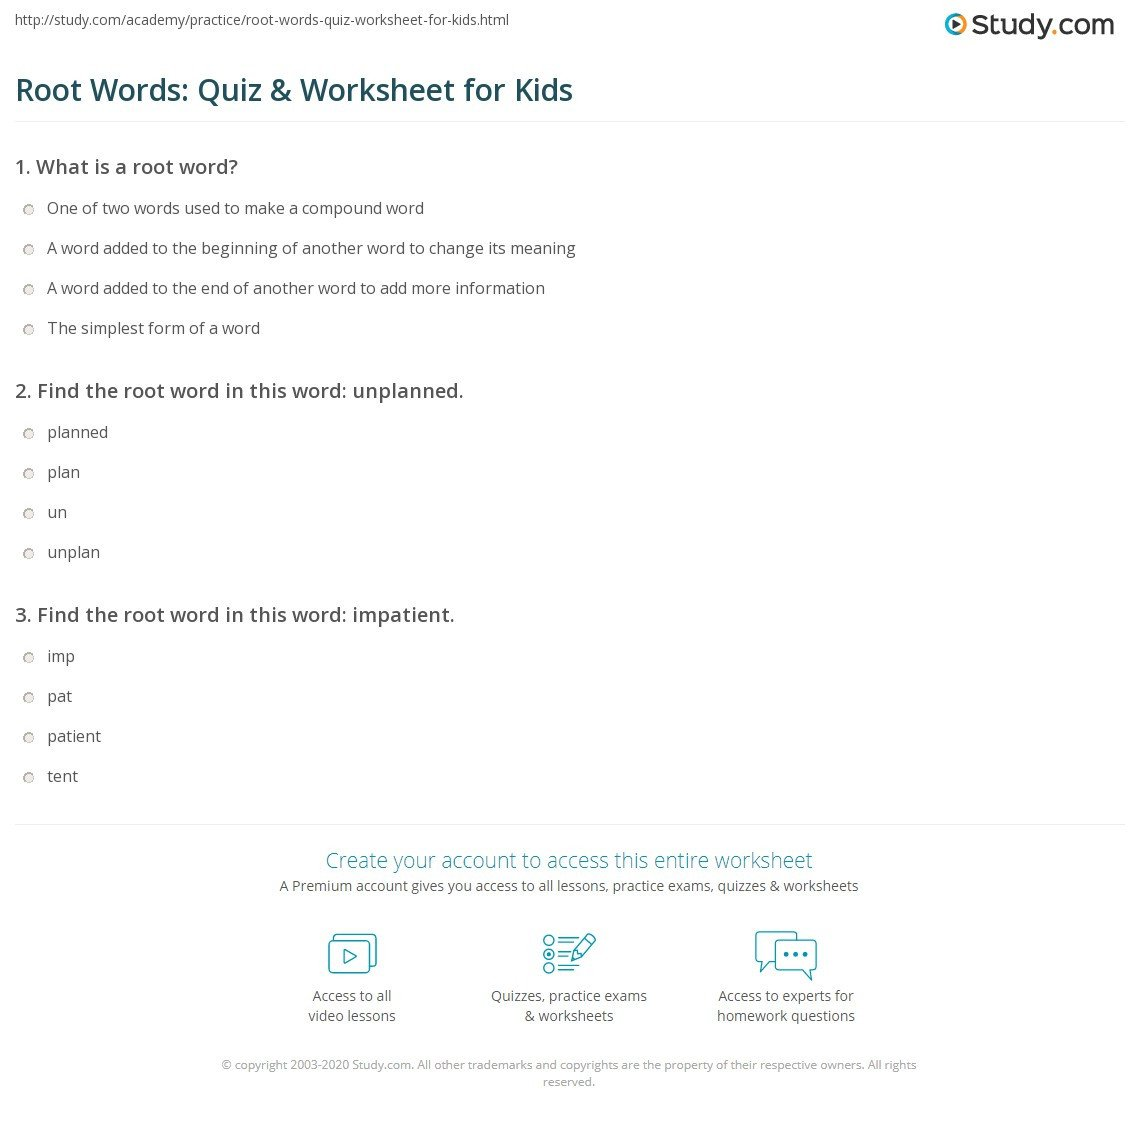 Root Word Worksheets 4th Grade Root Words Quiz & Worksheet for Kids